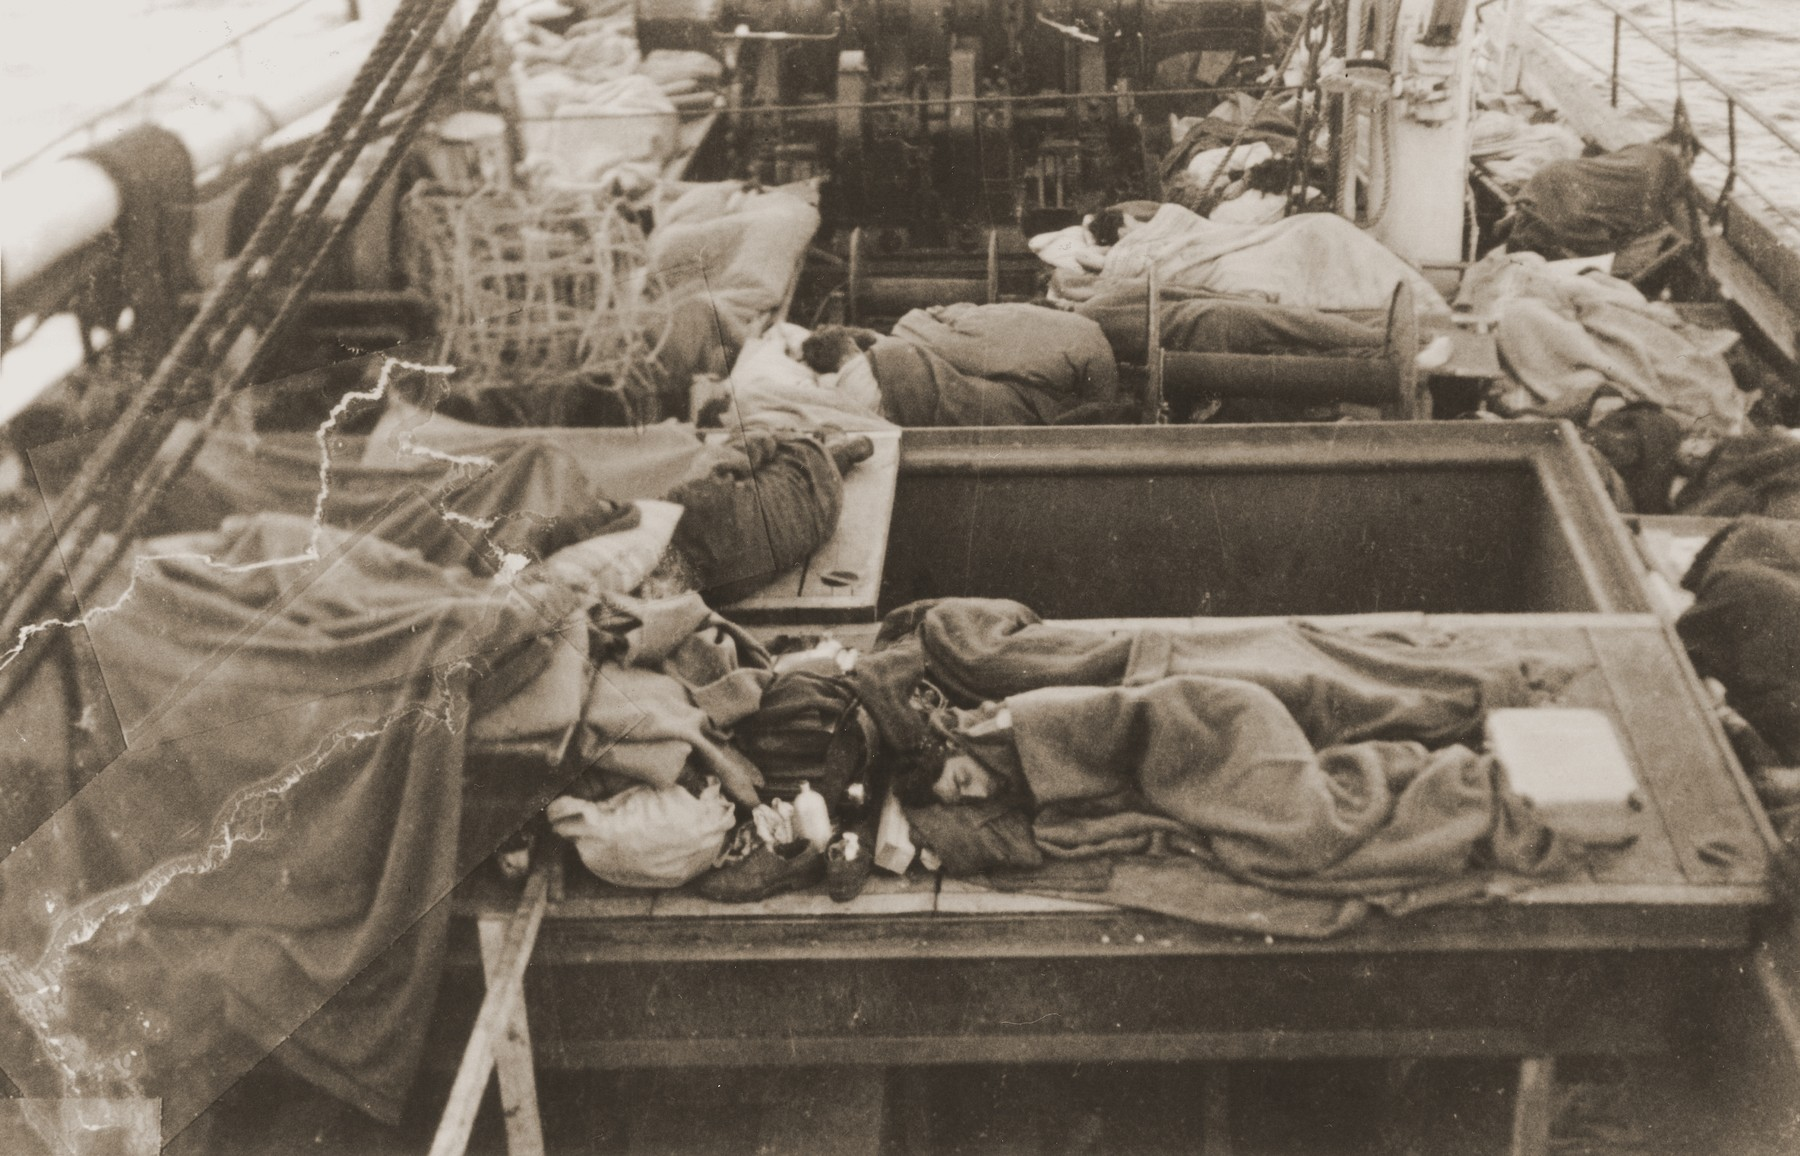 Jewish DPs sleep on the deck of the Mala immigrant ship en route to the new State of Israel.    Passengers would often come on deck during the night to escape the stench in the hold of the ship.  This photograph was taken just after dawn.